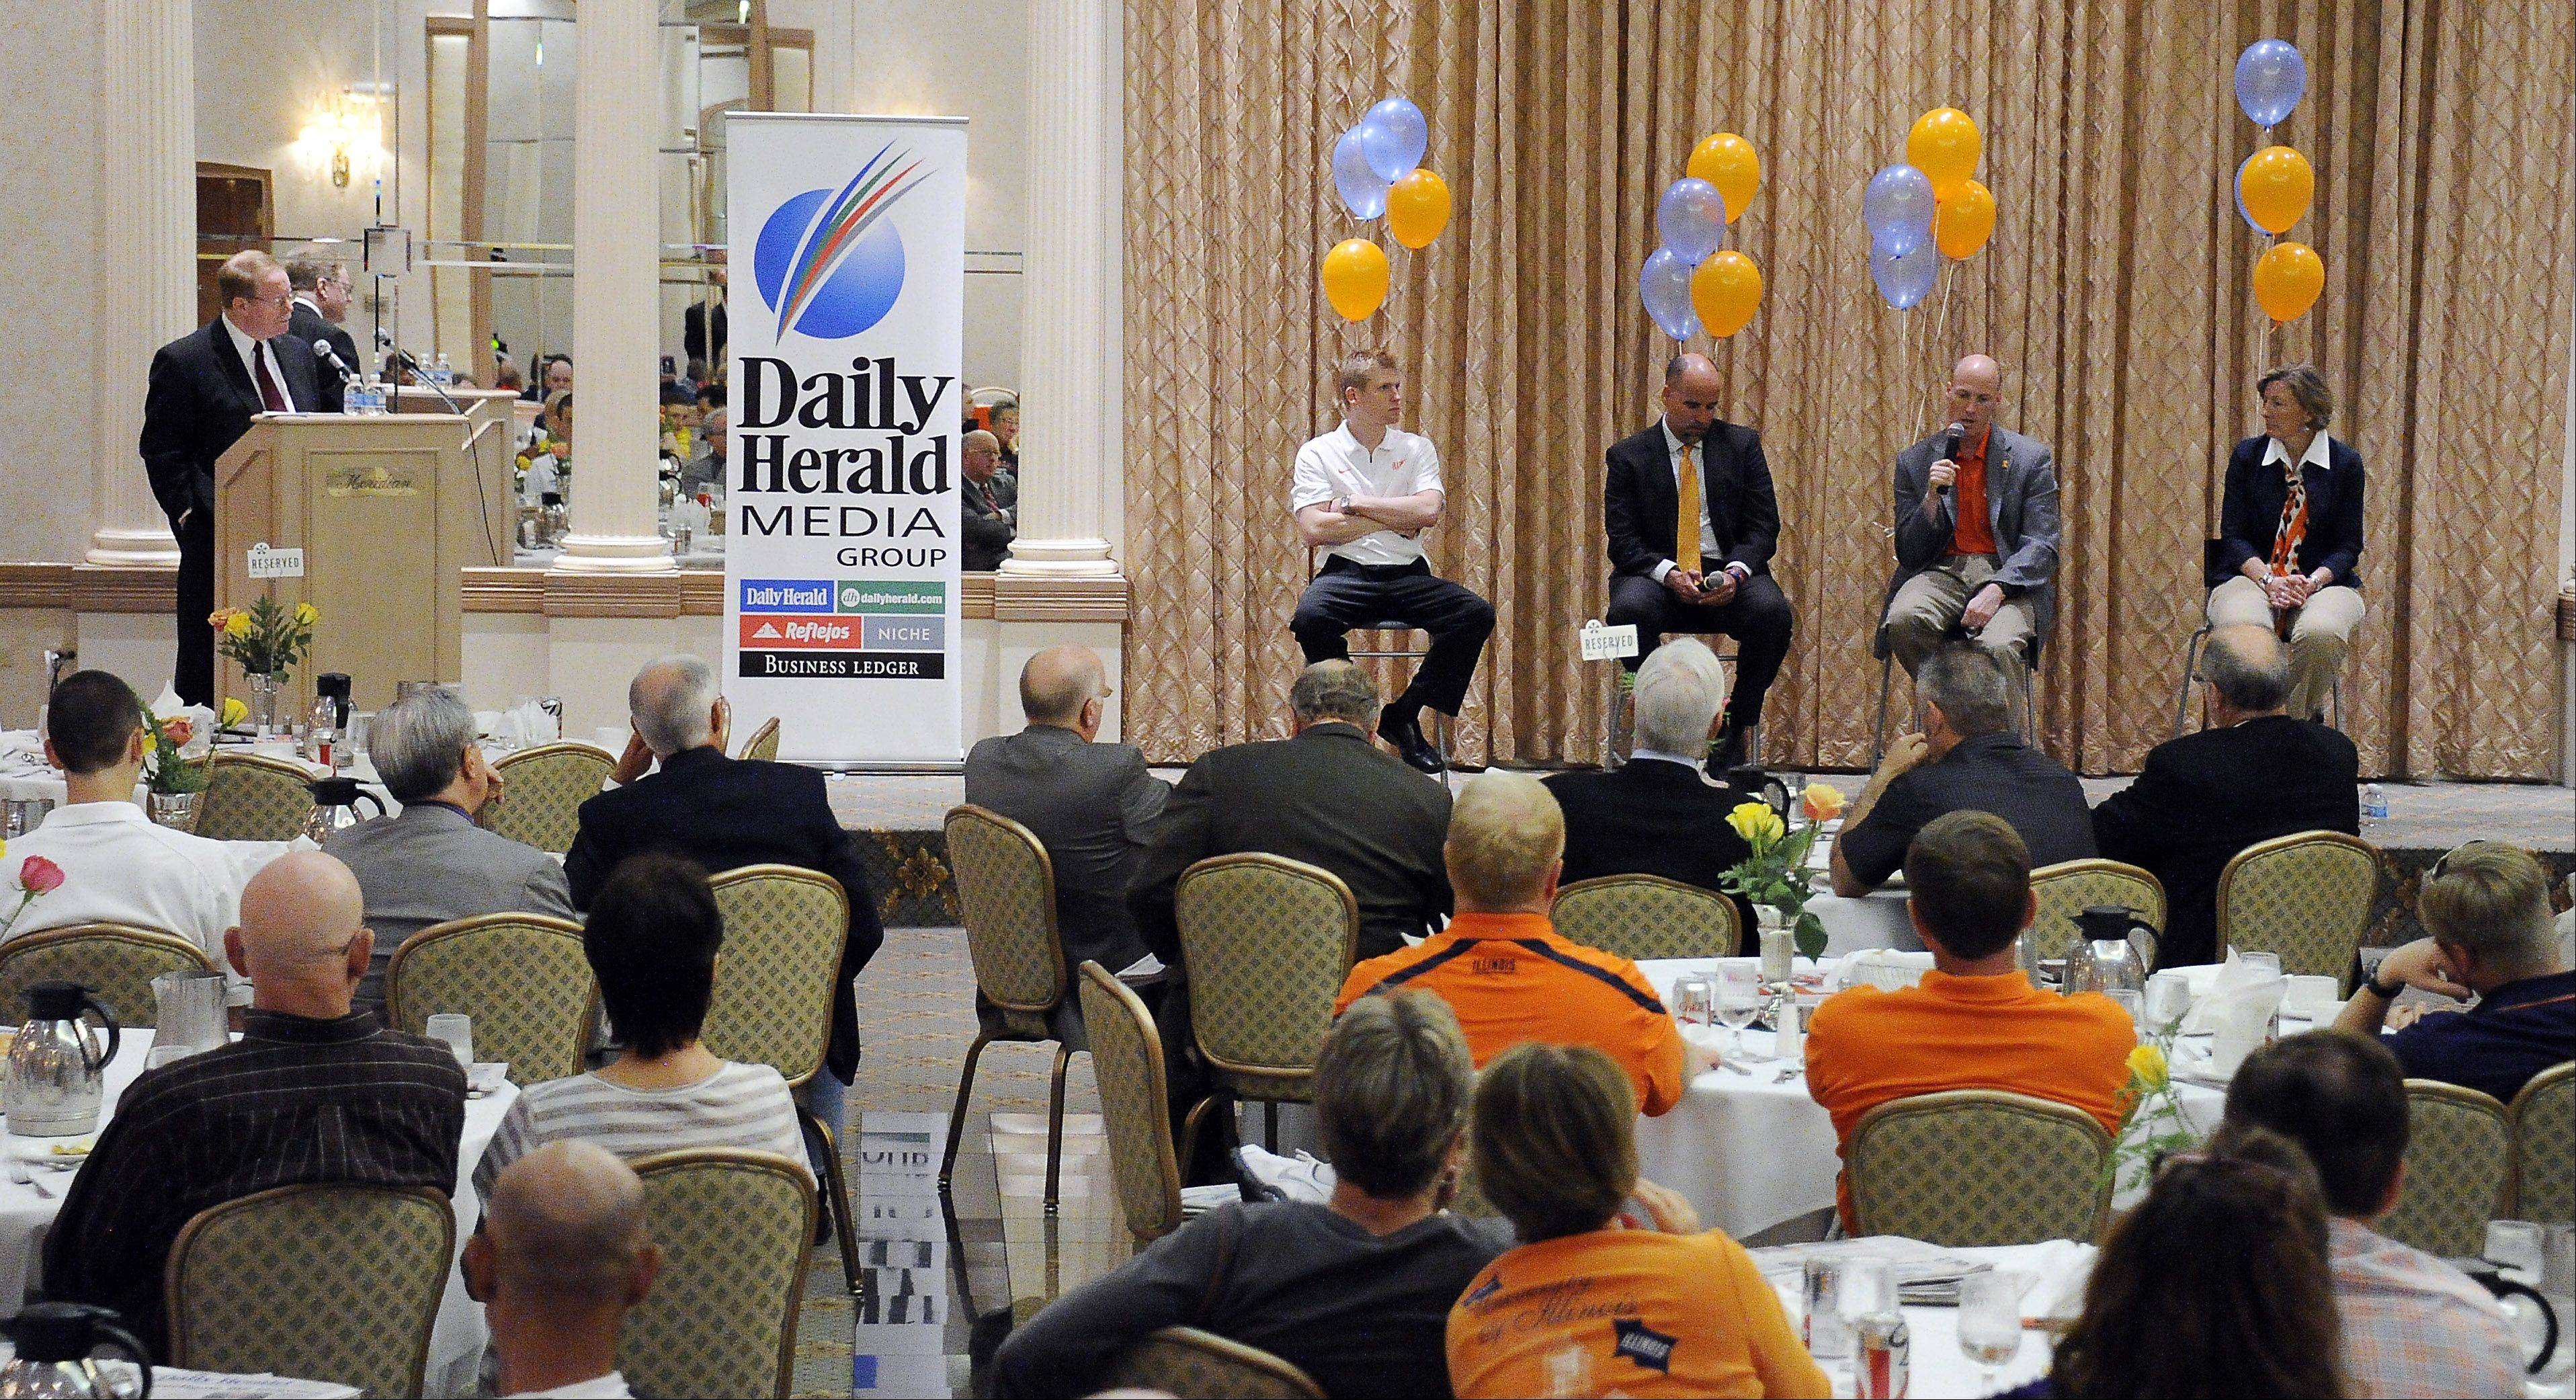 University of Illinois coaches Justin Spring (men's gymnastics), Matt Bollant (women's basketball), John Groce (men's basketball), and Janet Rayfield (women's soccer) answer questions at the Illini Caravan event Wednesday in Rolling Meadows.